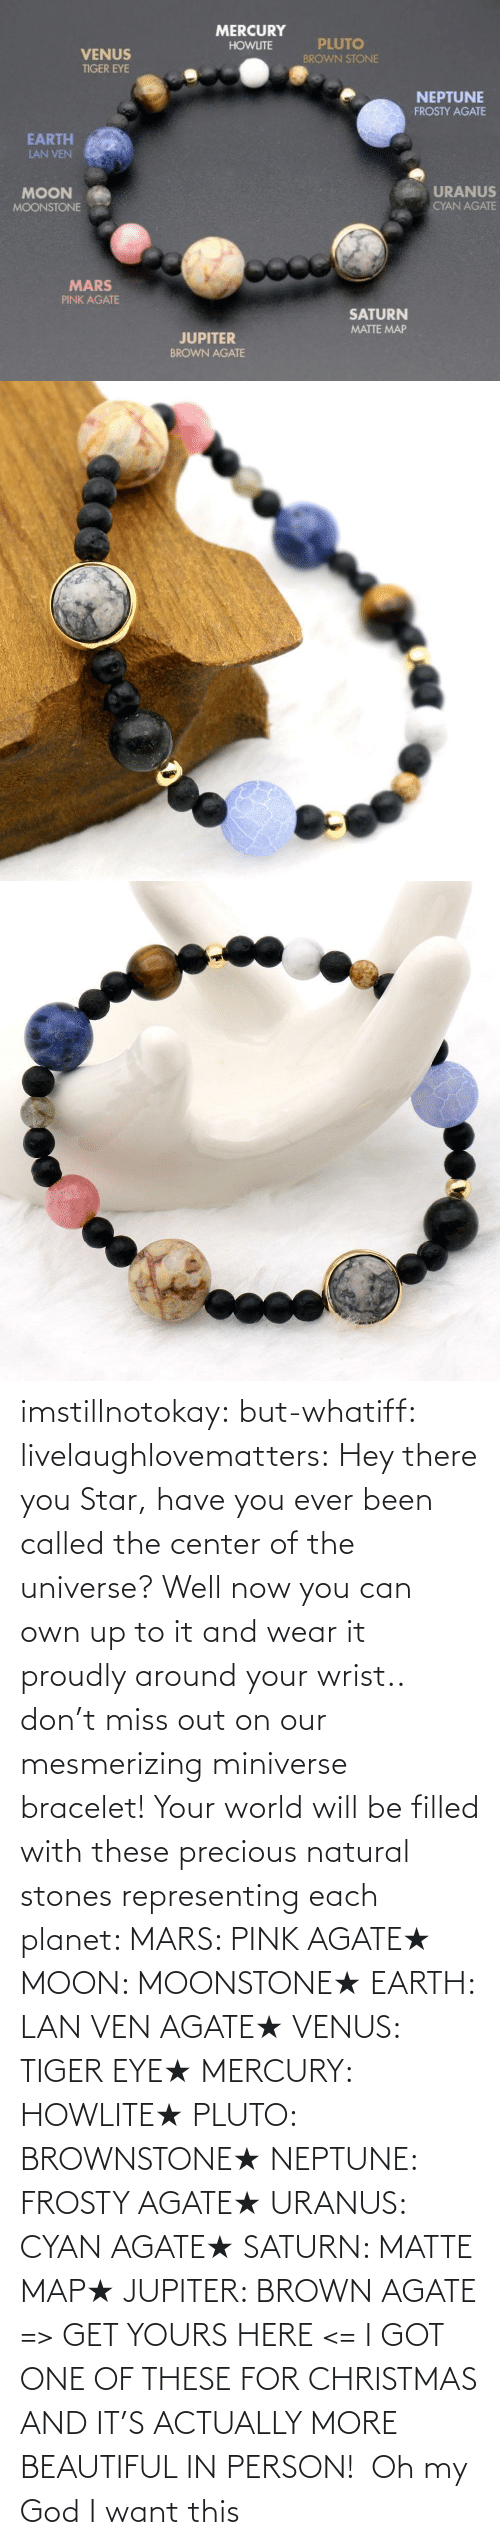 Center: imstillnotokay:  but-whatiff: livelaughlovematters:  Hey there you Star, have you ever been called the center of the universe? Well now you can own up to it and wear it proudly around your wrist.. don't miss out on our mesmerizing miniverse bracelet! Your world will be filled with these precious natural stones representing each planet:  MARS: PINK AGATE★ MOON: MOONSTONE★ EARTH: LAN VEN AGATE★ VENUS: TIGER EYE★ MERCURY: HOWLITE★ PLUTO: BROWNSTONE★ NEPTUNE: FROSTY AGATE★ URANUS: CYAN AGATE★ SATURN: MATTE MAP★ JUPITER: BROWN AGATE => GET YOURS HERE <=  I GOT ONE OF THESE FOR CHRISTMAS AND IT'S ACTUALLY MORE BEAUTIFUL IN PERSON!     Oh my God I want this